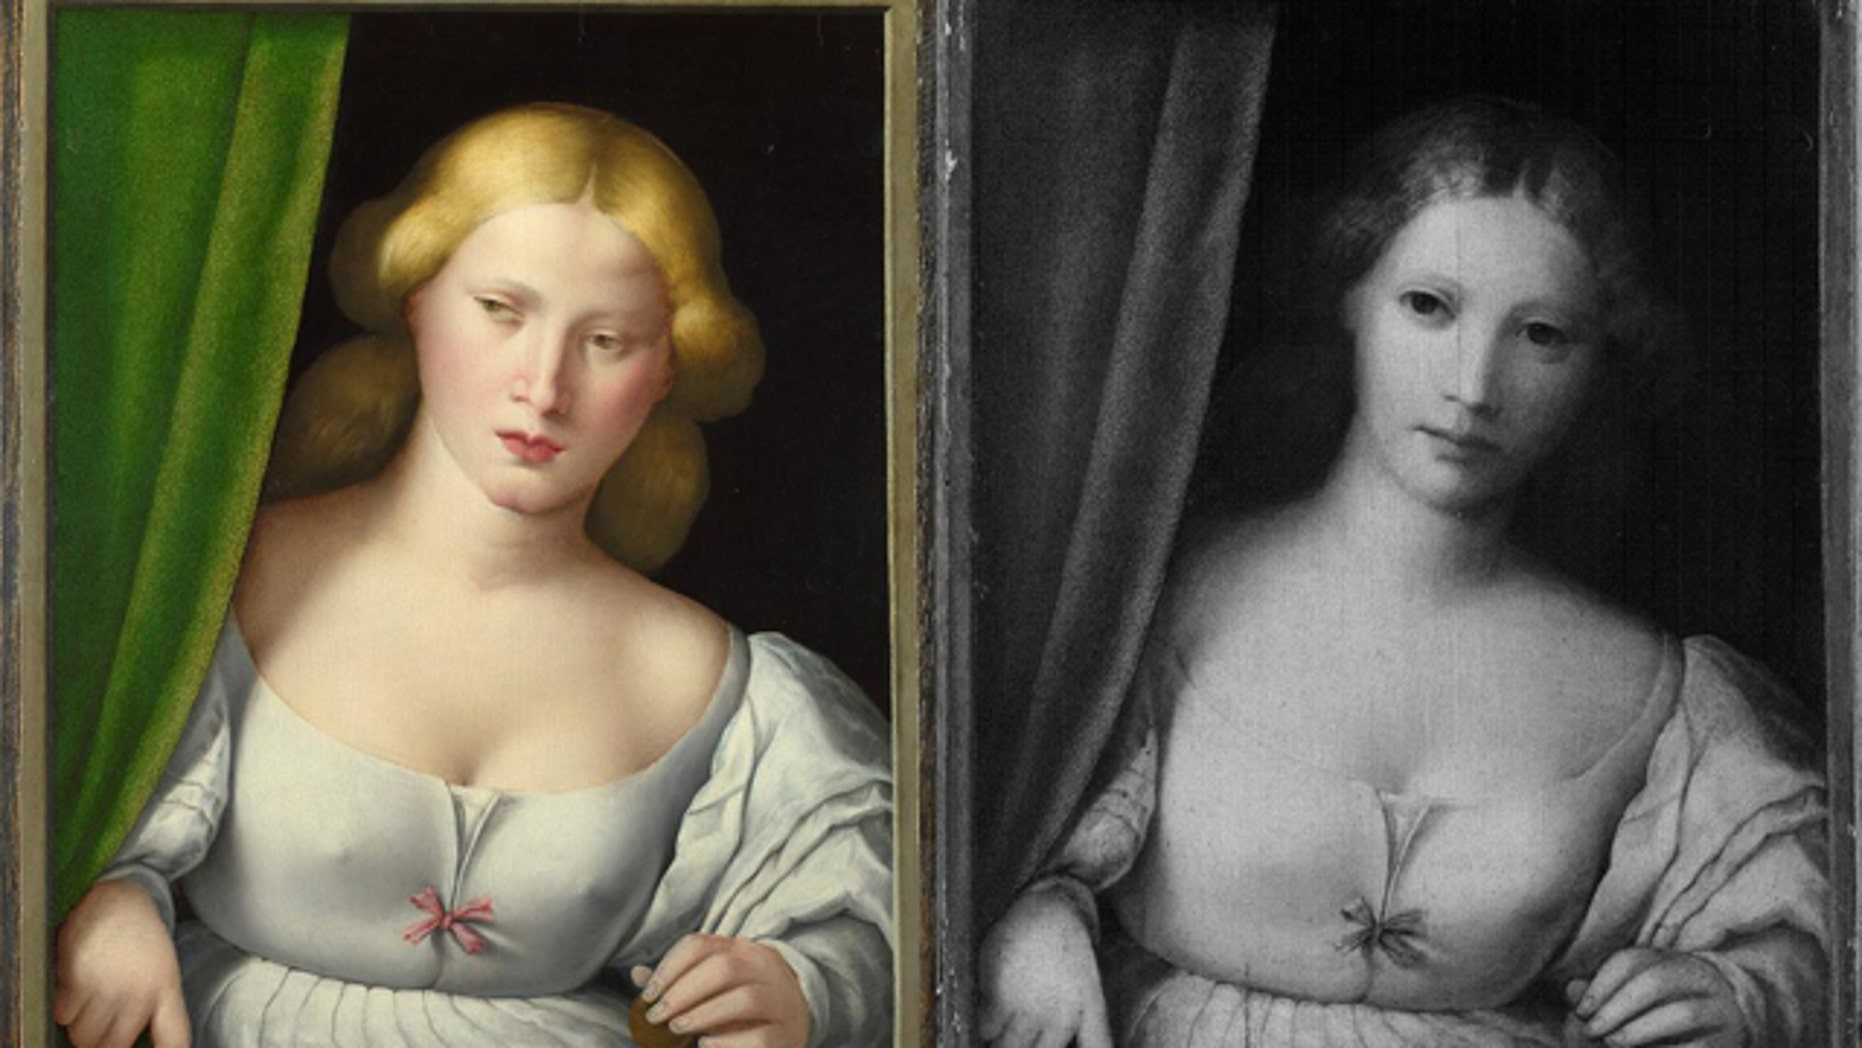 A provocative Renaissance painting from around 1520 was dramatically altered in the 19th century to satisfy more restrained Victorian tastes. The girl's hair was changed from blond to brunette, her expression made more innocent and her bodice rendered less revealing. Now science has helped uncover the original work.